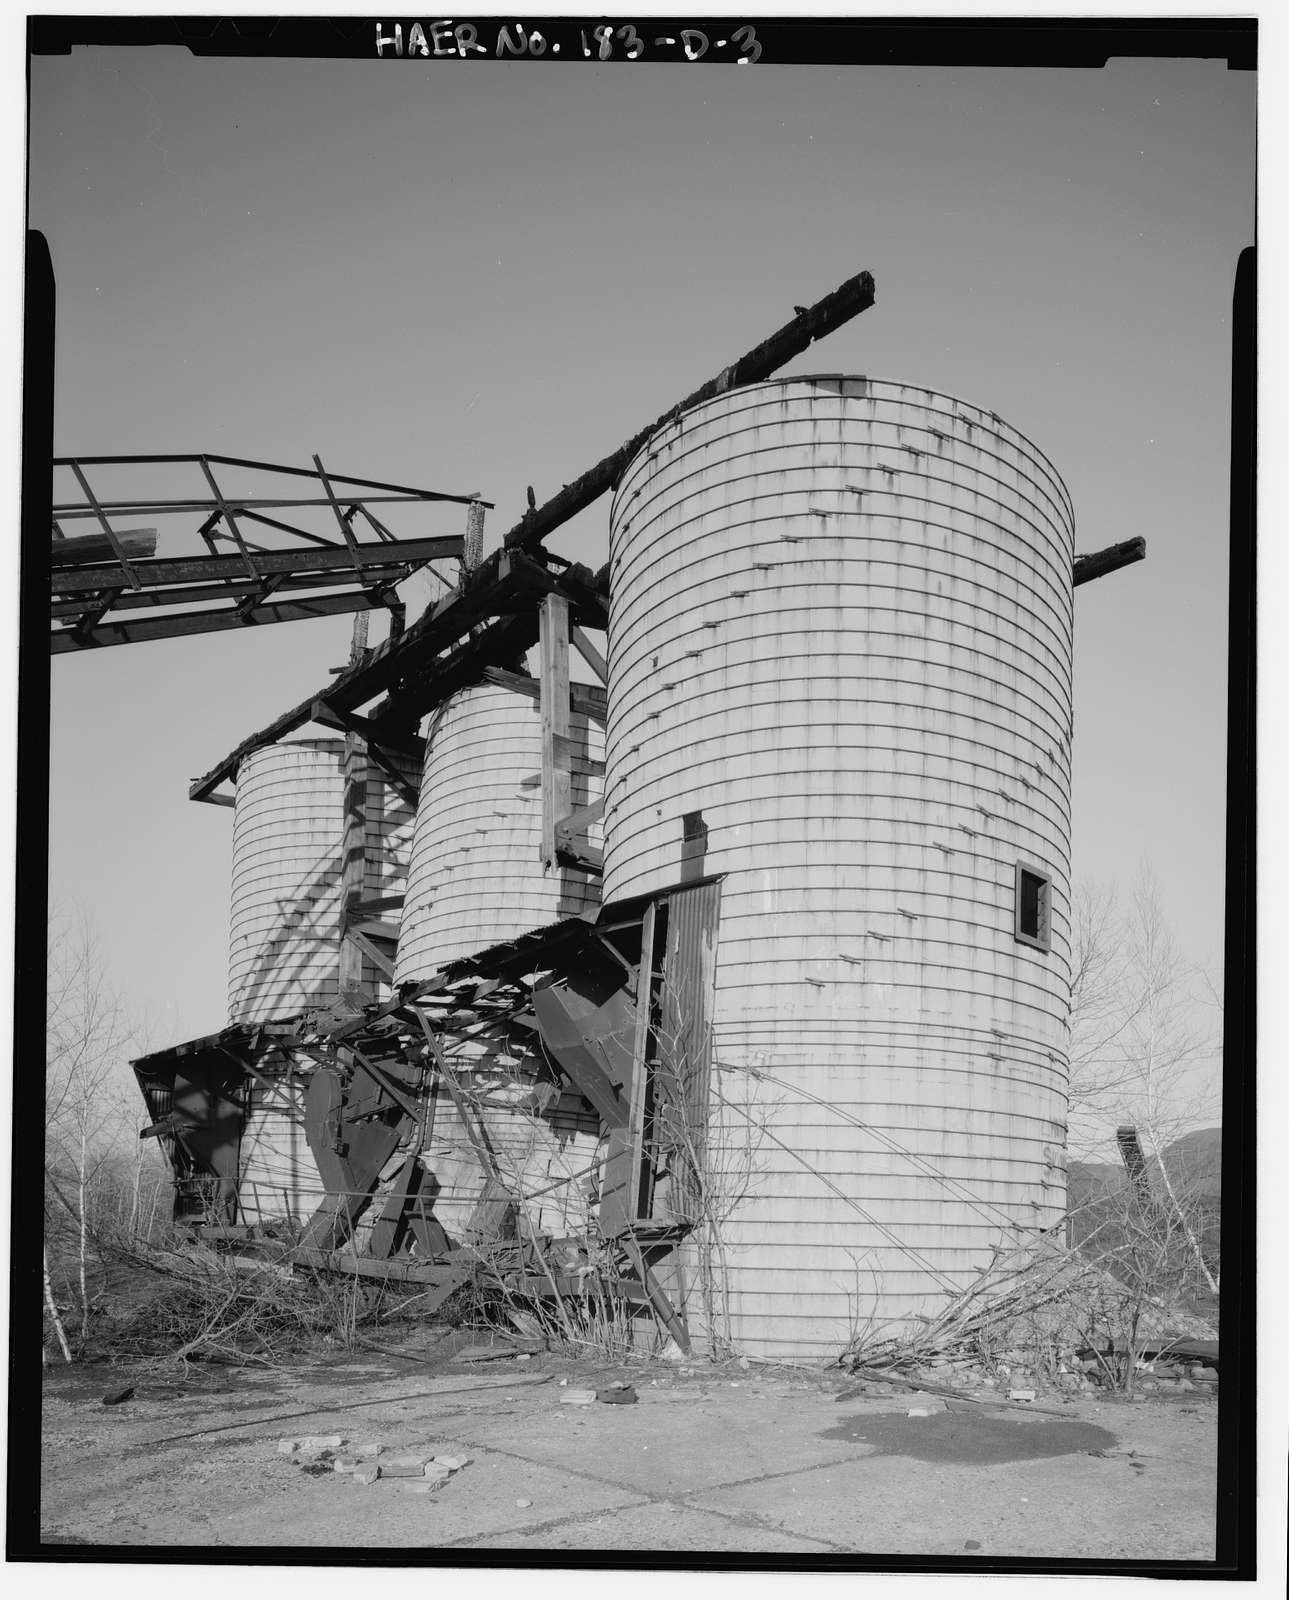 Marvine Colliery, Dorr Thickener Plant No. 1, West side Boulevard Avenue, between East Parker Street & Route 380, Scranton, Lackawanna County, PA